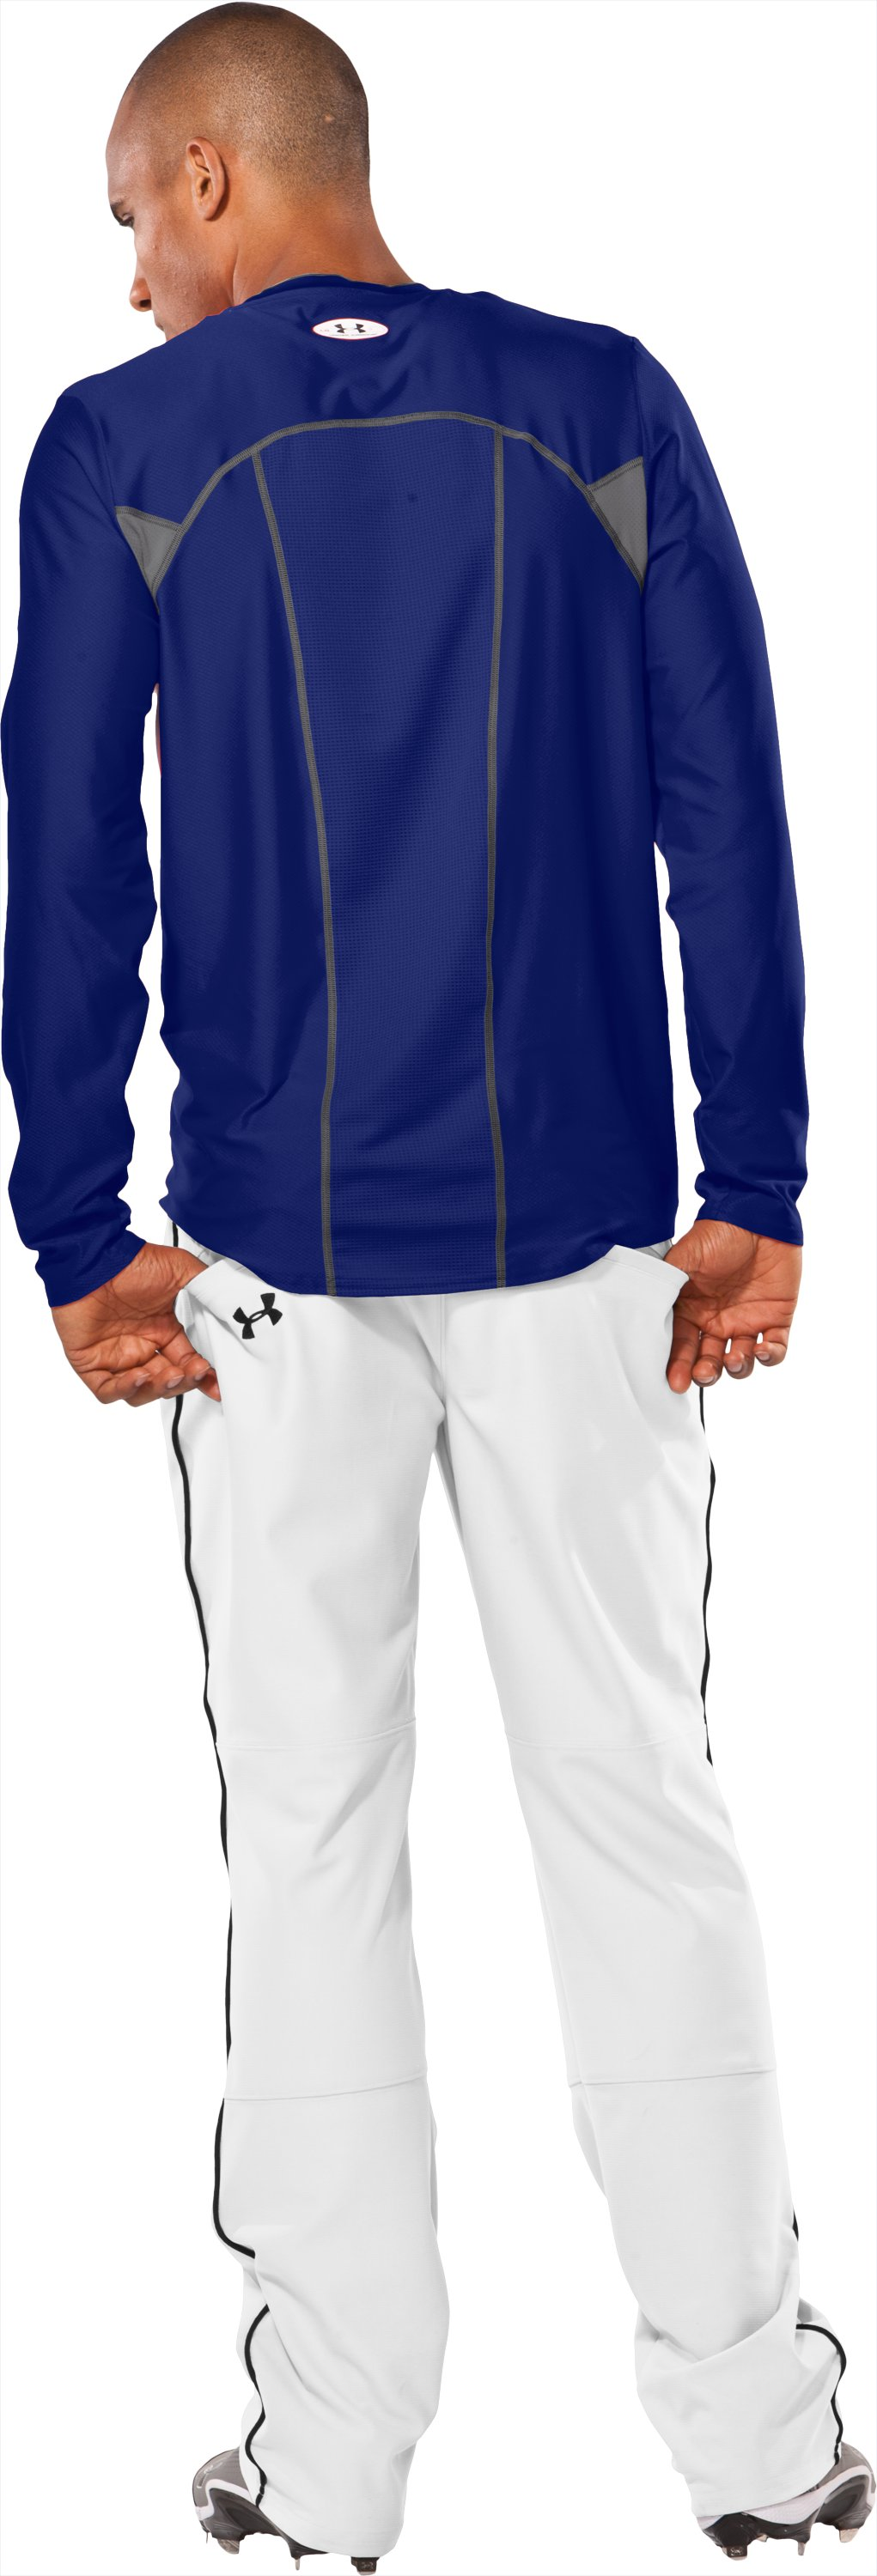 Men's Baseball Gameday Long Sleeve Shirt, Royal, Back